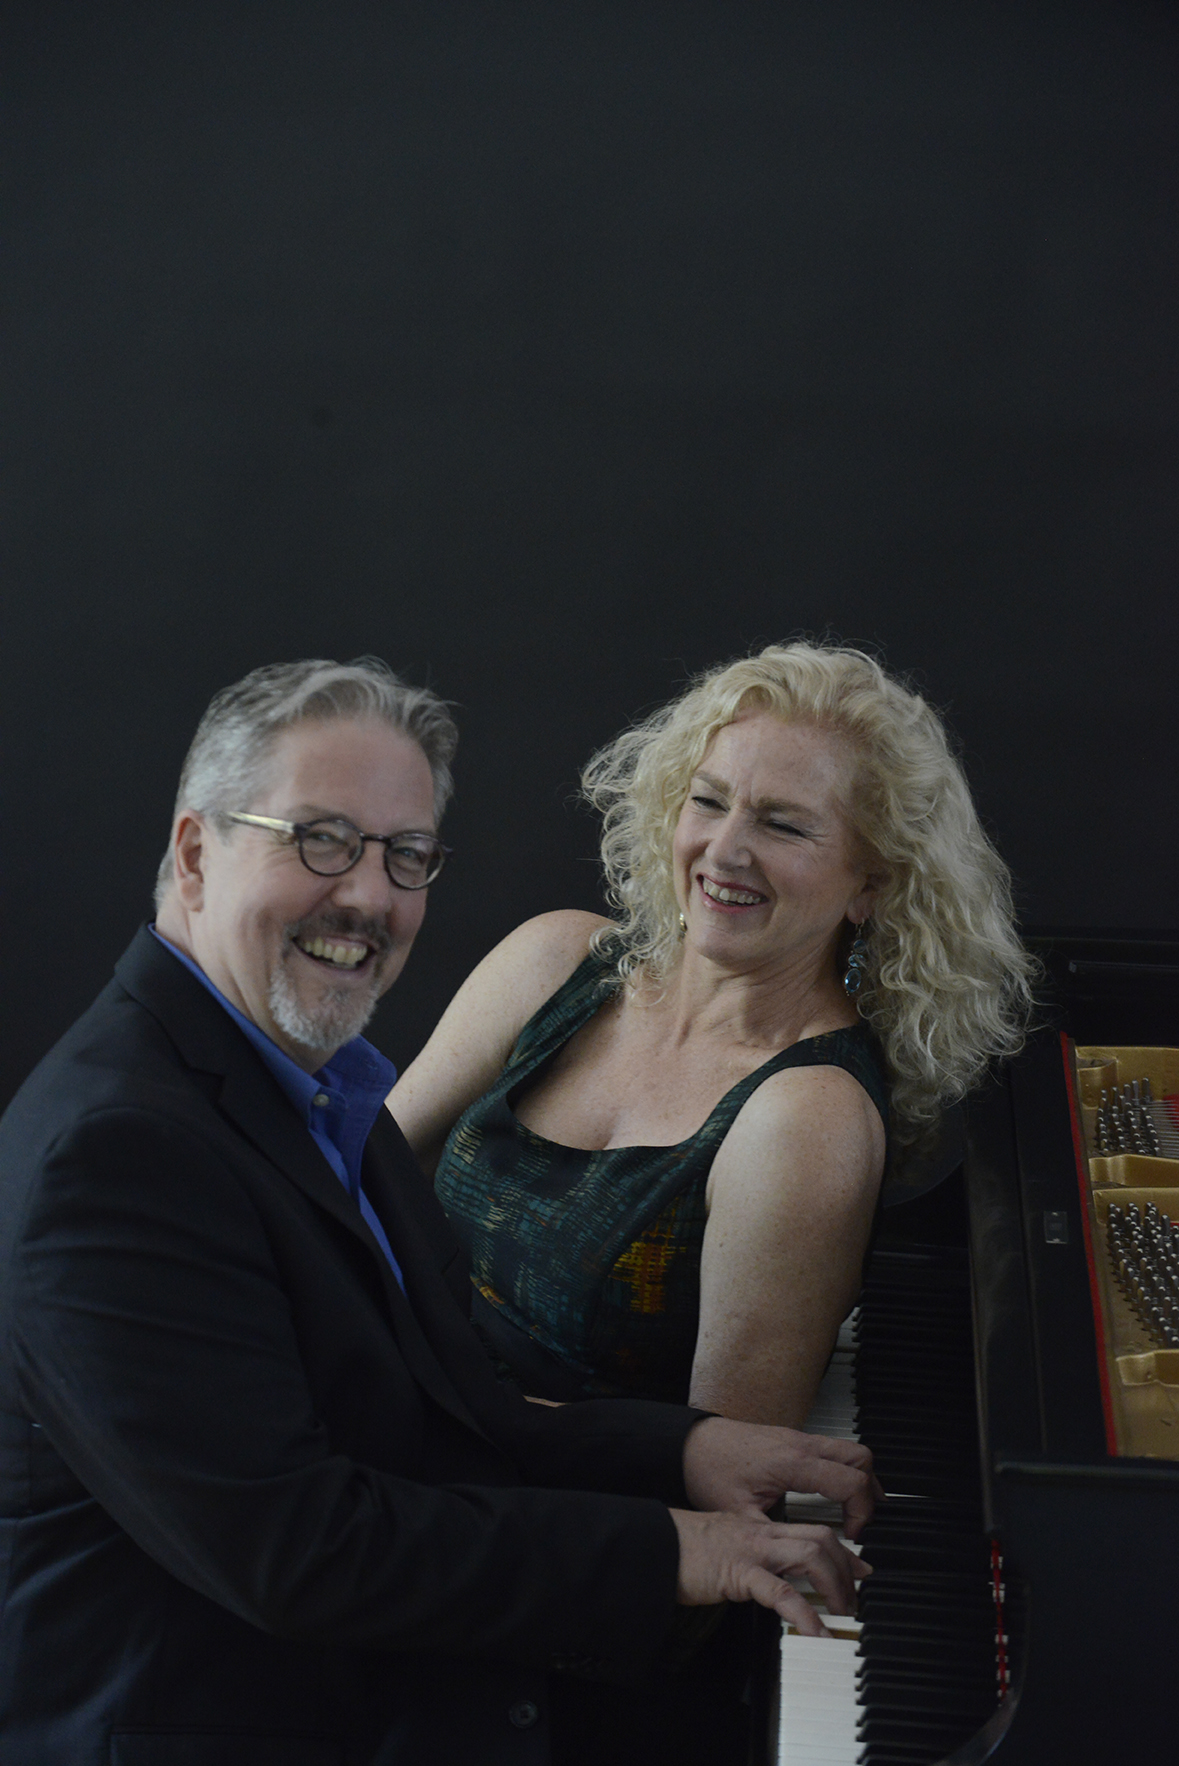 Pianist Ron Roy and Vocalist Shepley Metcalf